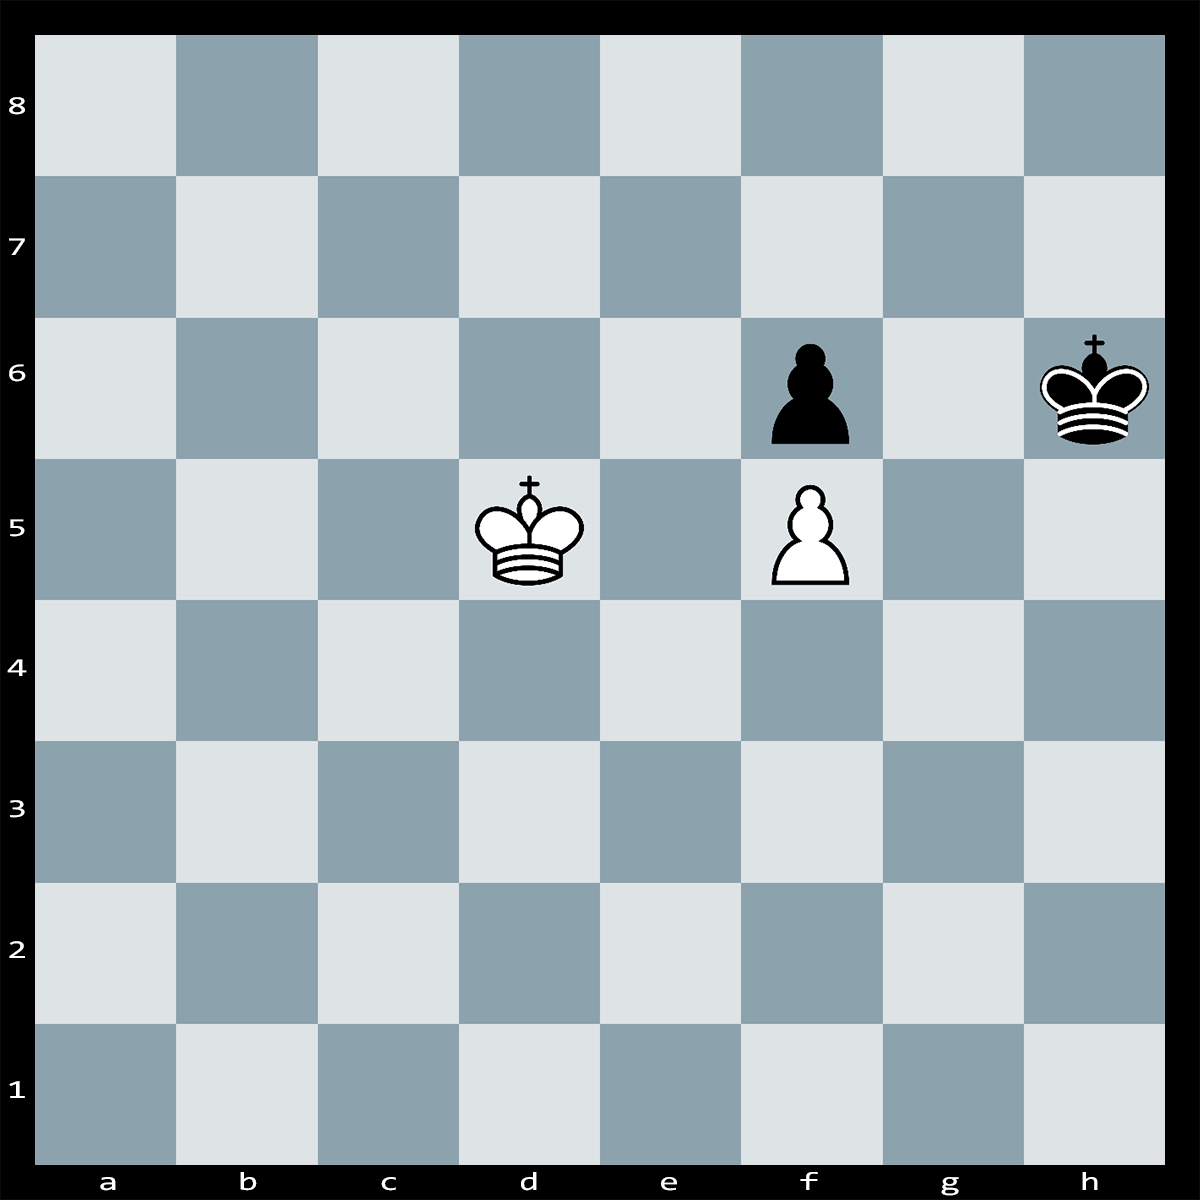 White to Play and Win, Find the best Move | Chess Puzzle #162